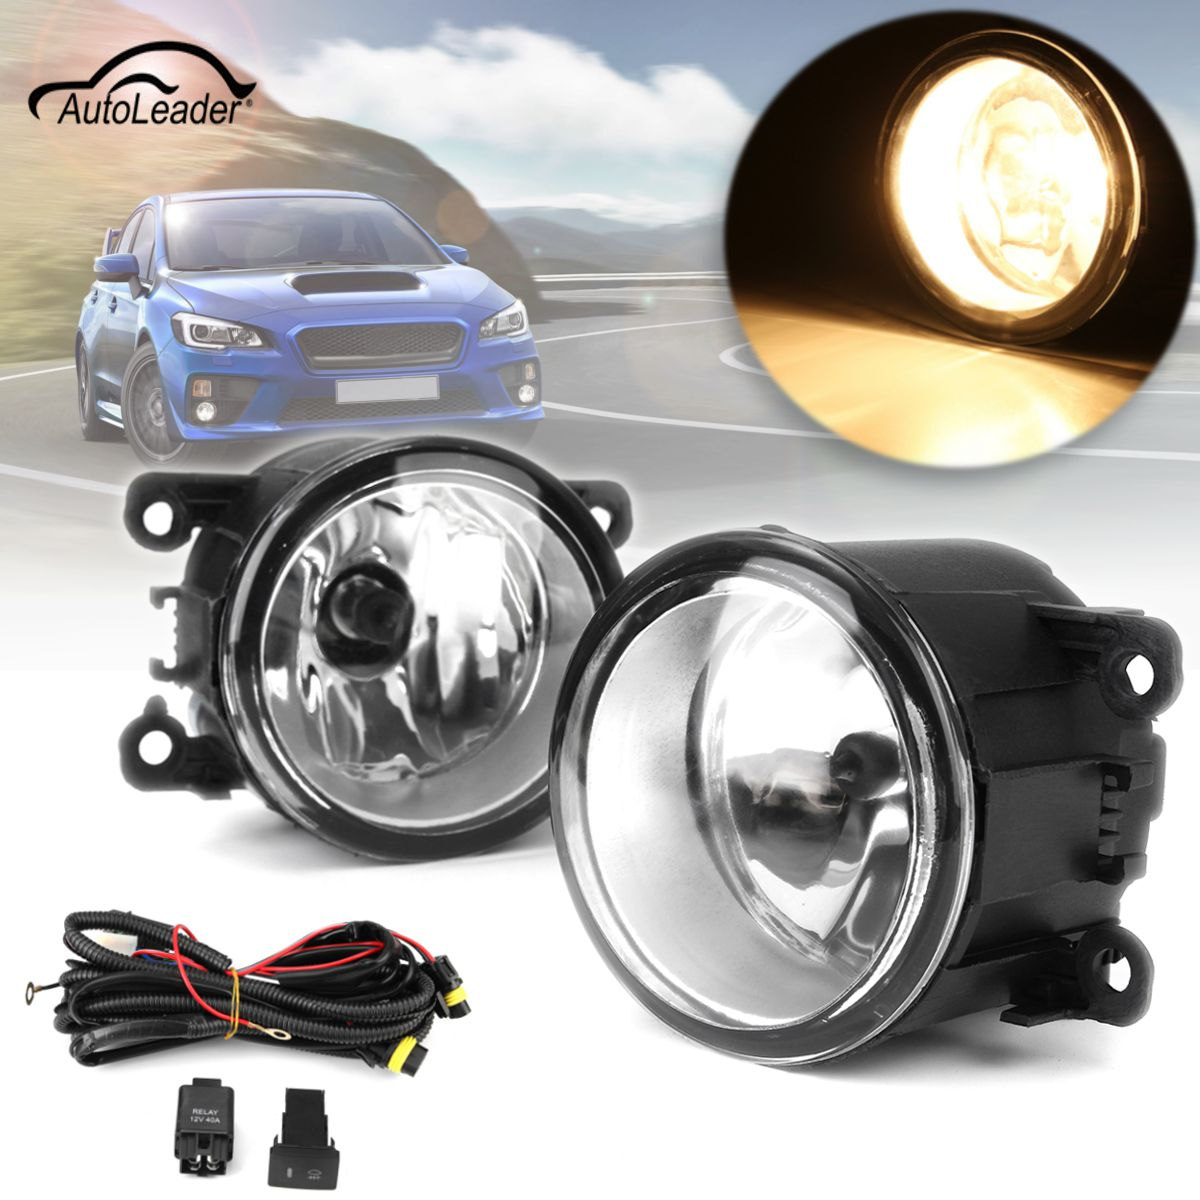 For Subaru Impreza/WRX/WRX STI/XV 1 Pair H11 Car Front Fog Light Clear Lens With Wiring Kit цена 2017